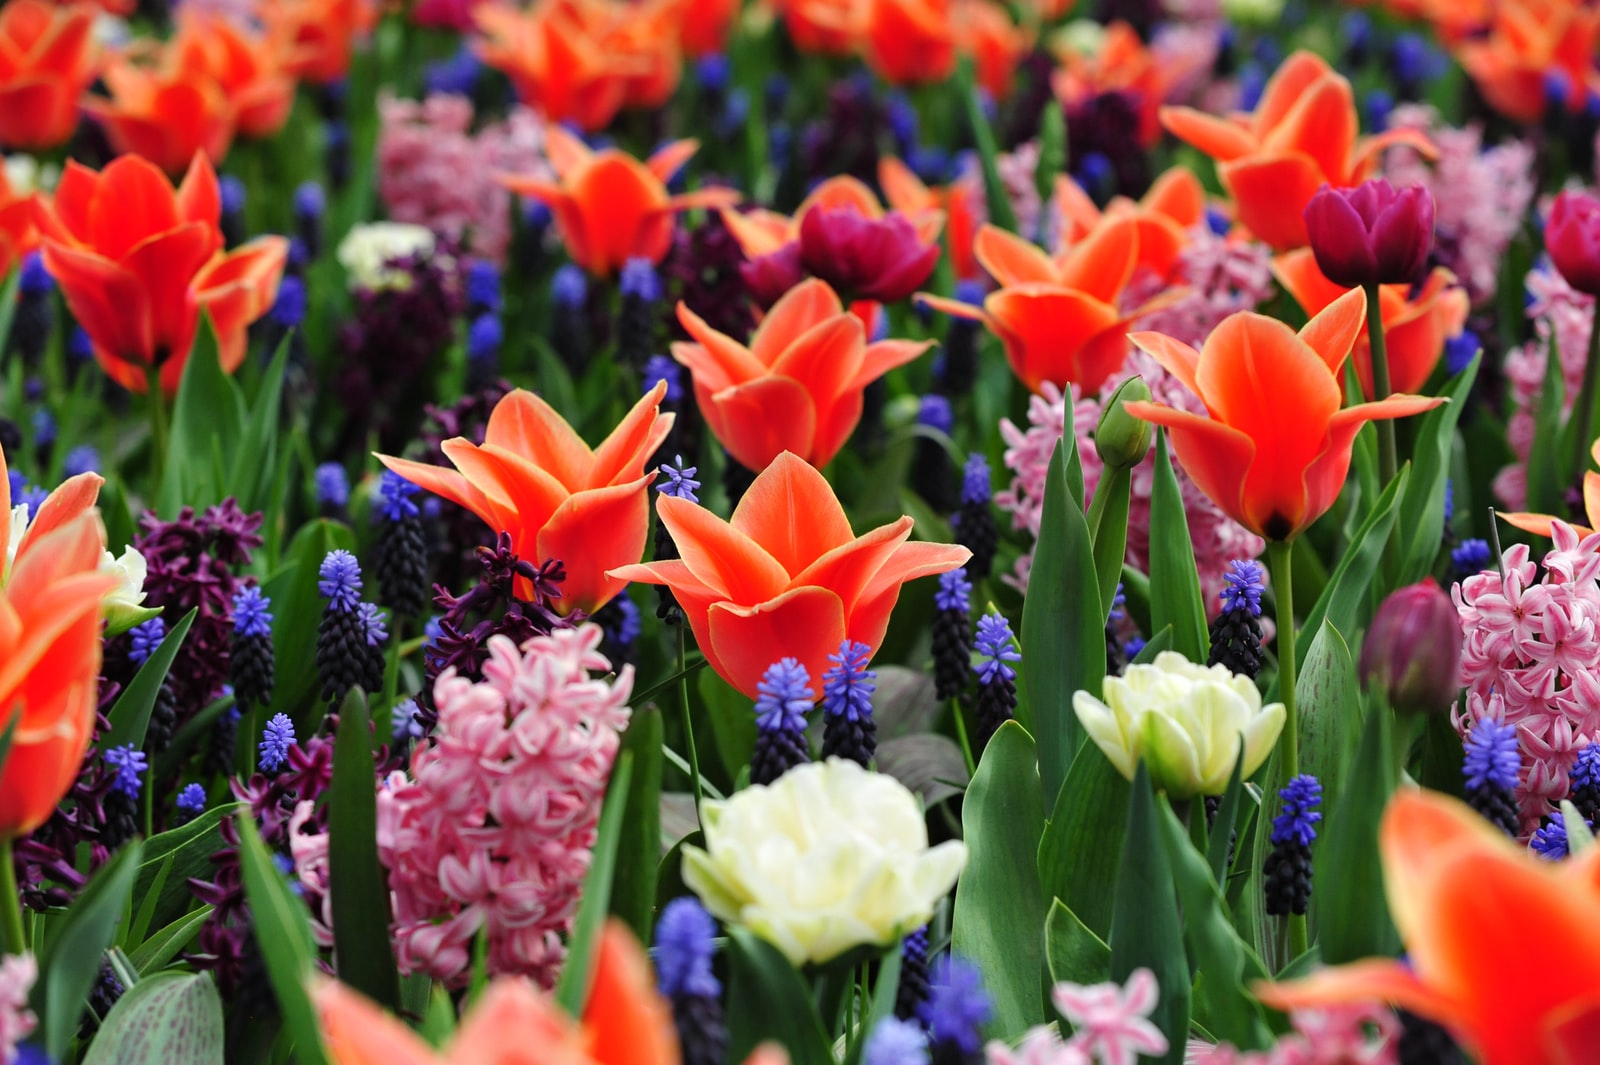 """Nikon D700 sample photo. """"Assorted-color flowers in bloom"""" photography"""